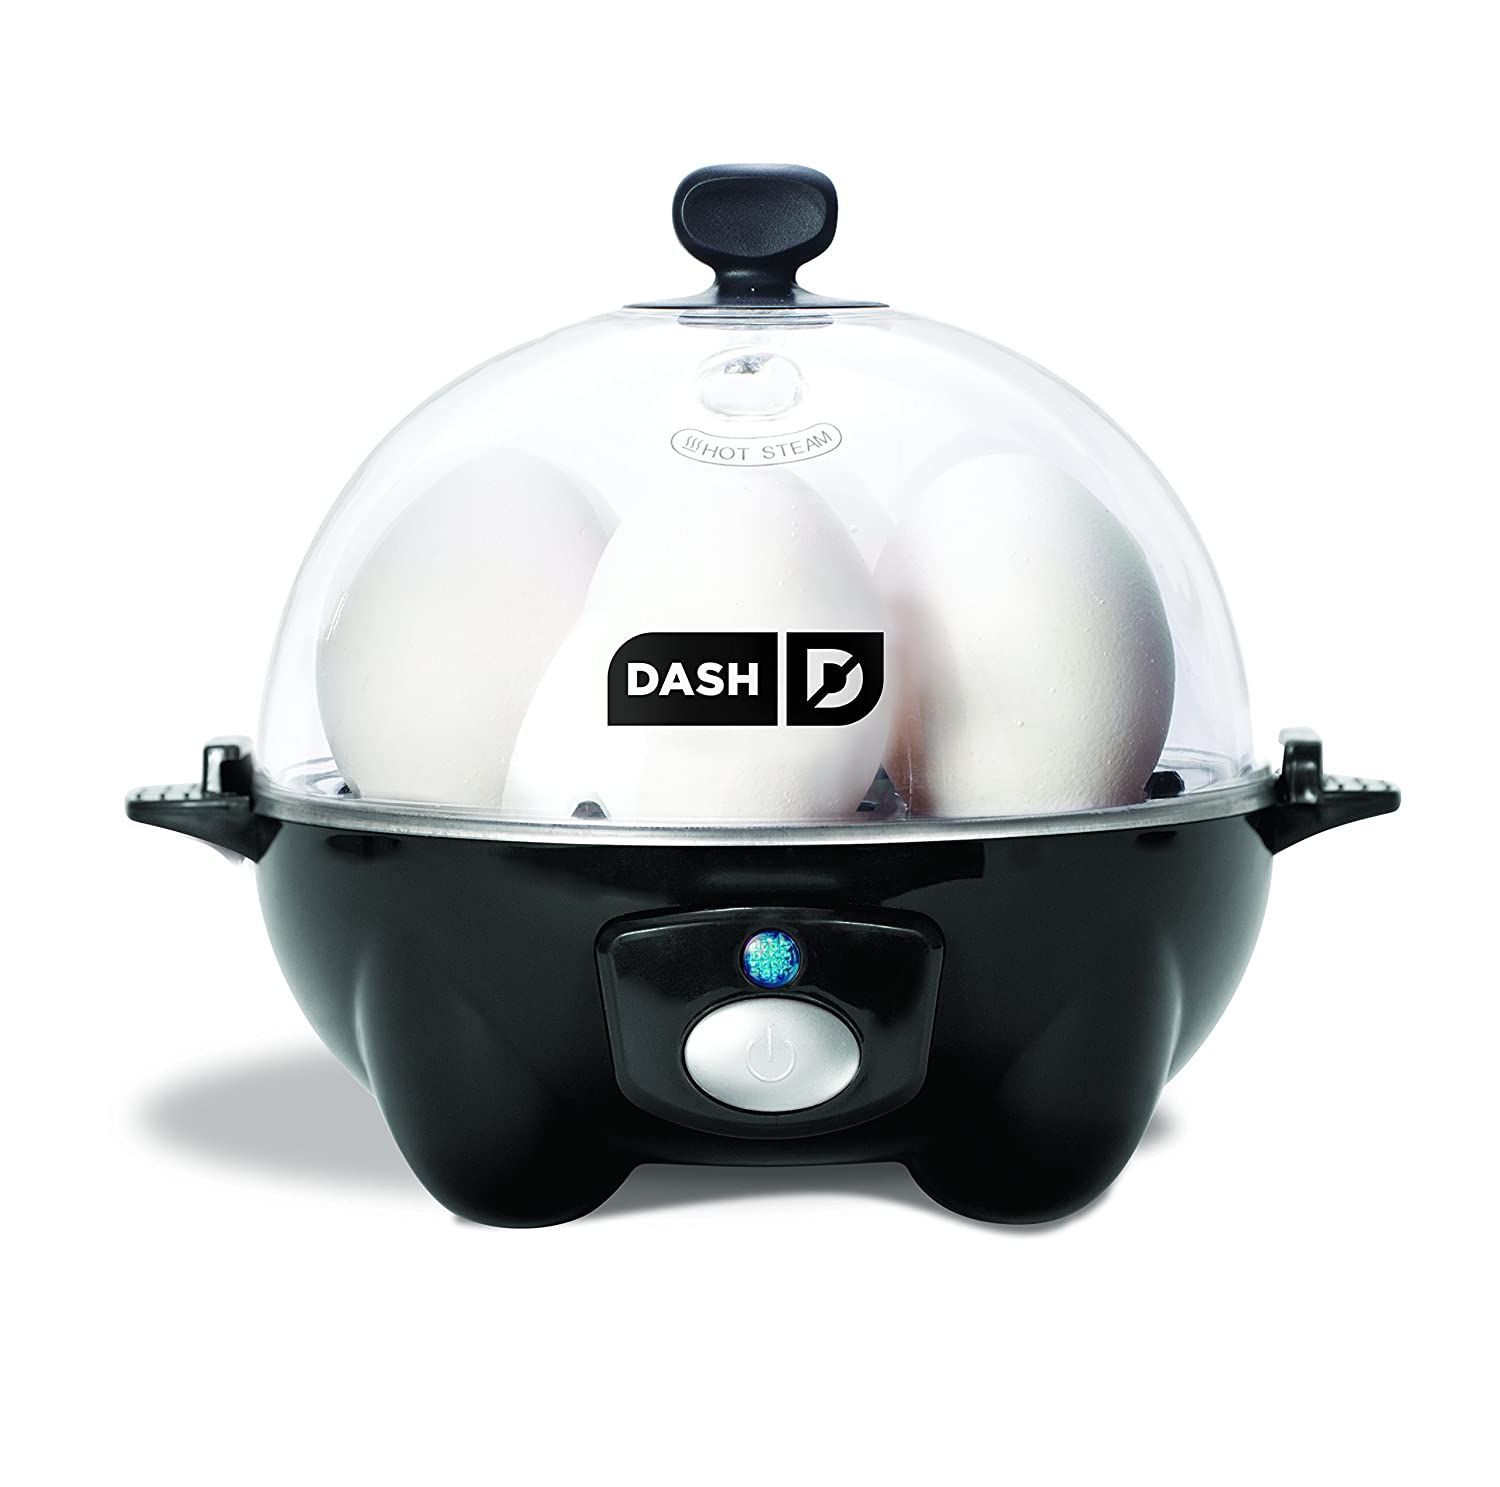 amazon com dash rapid egg cooker black electric egg cookers